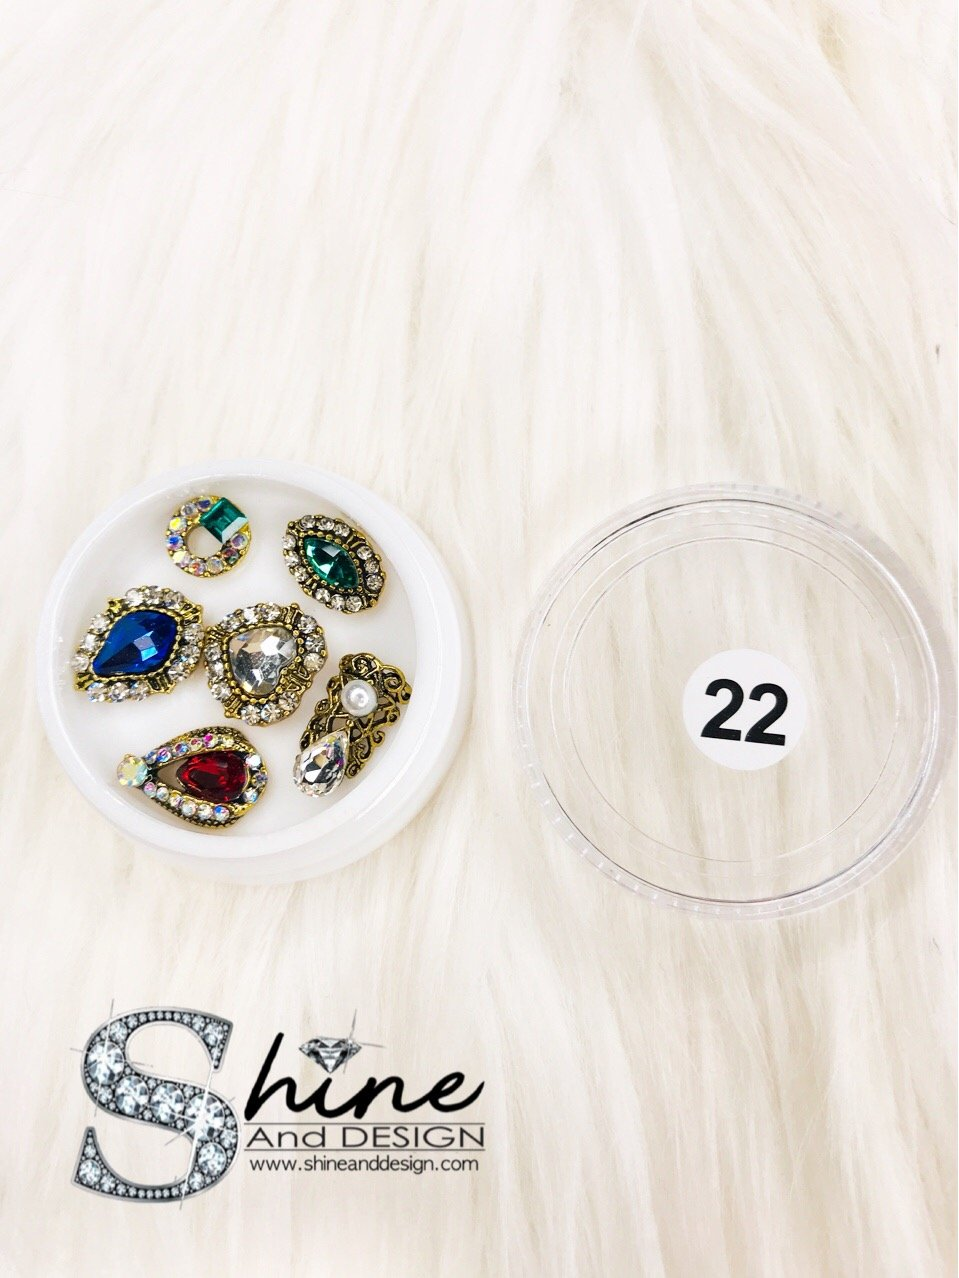 SHINE- Mix Alloy Charms with Crystals - Fancy Collection #22